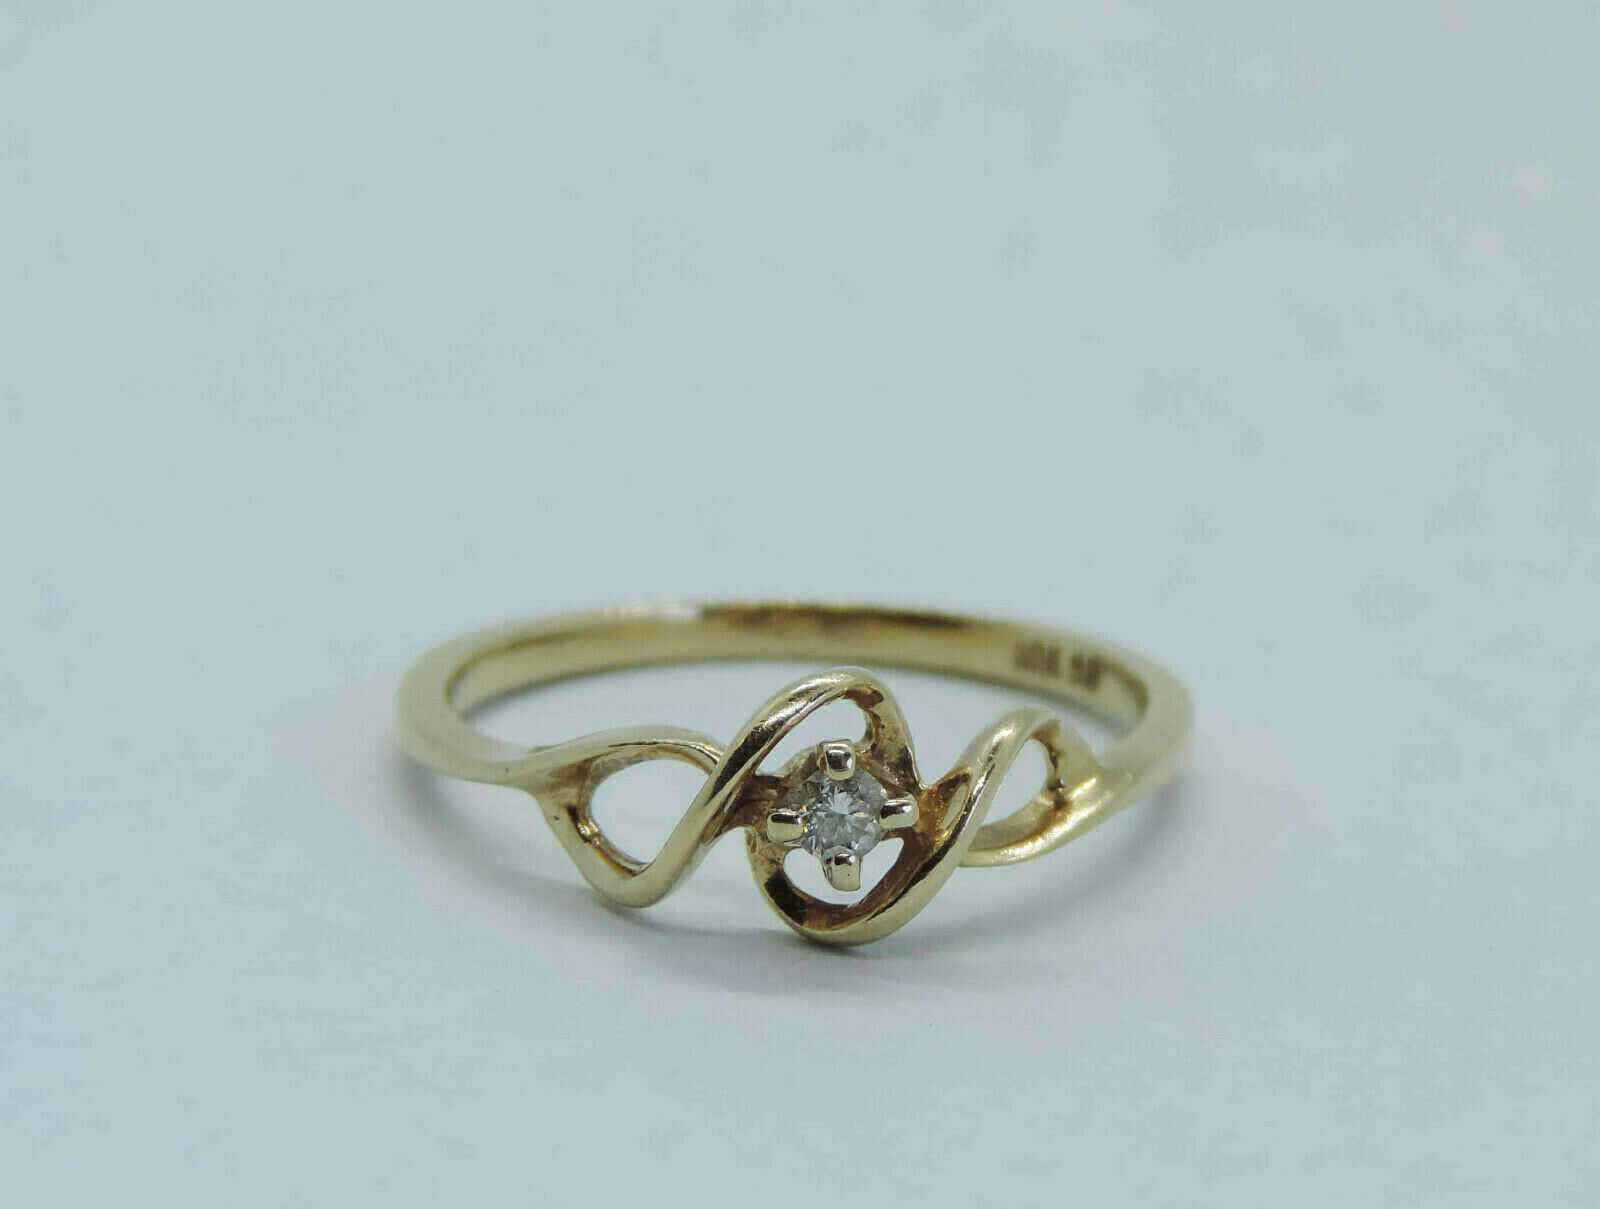 Ladies Genuine Diamond Solitaire Ring w  Wire Ribbon Accent - 10K Yellow gold